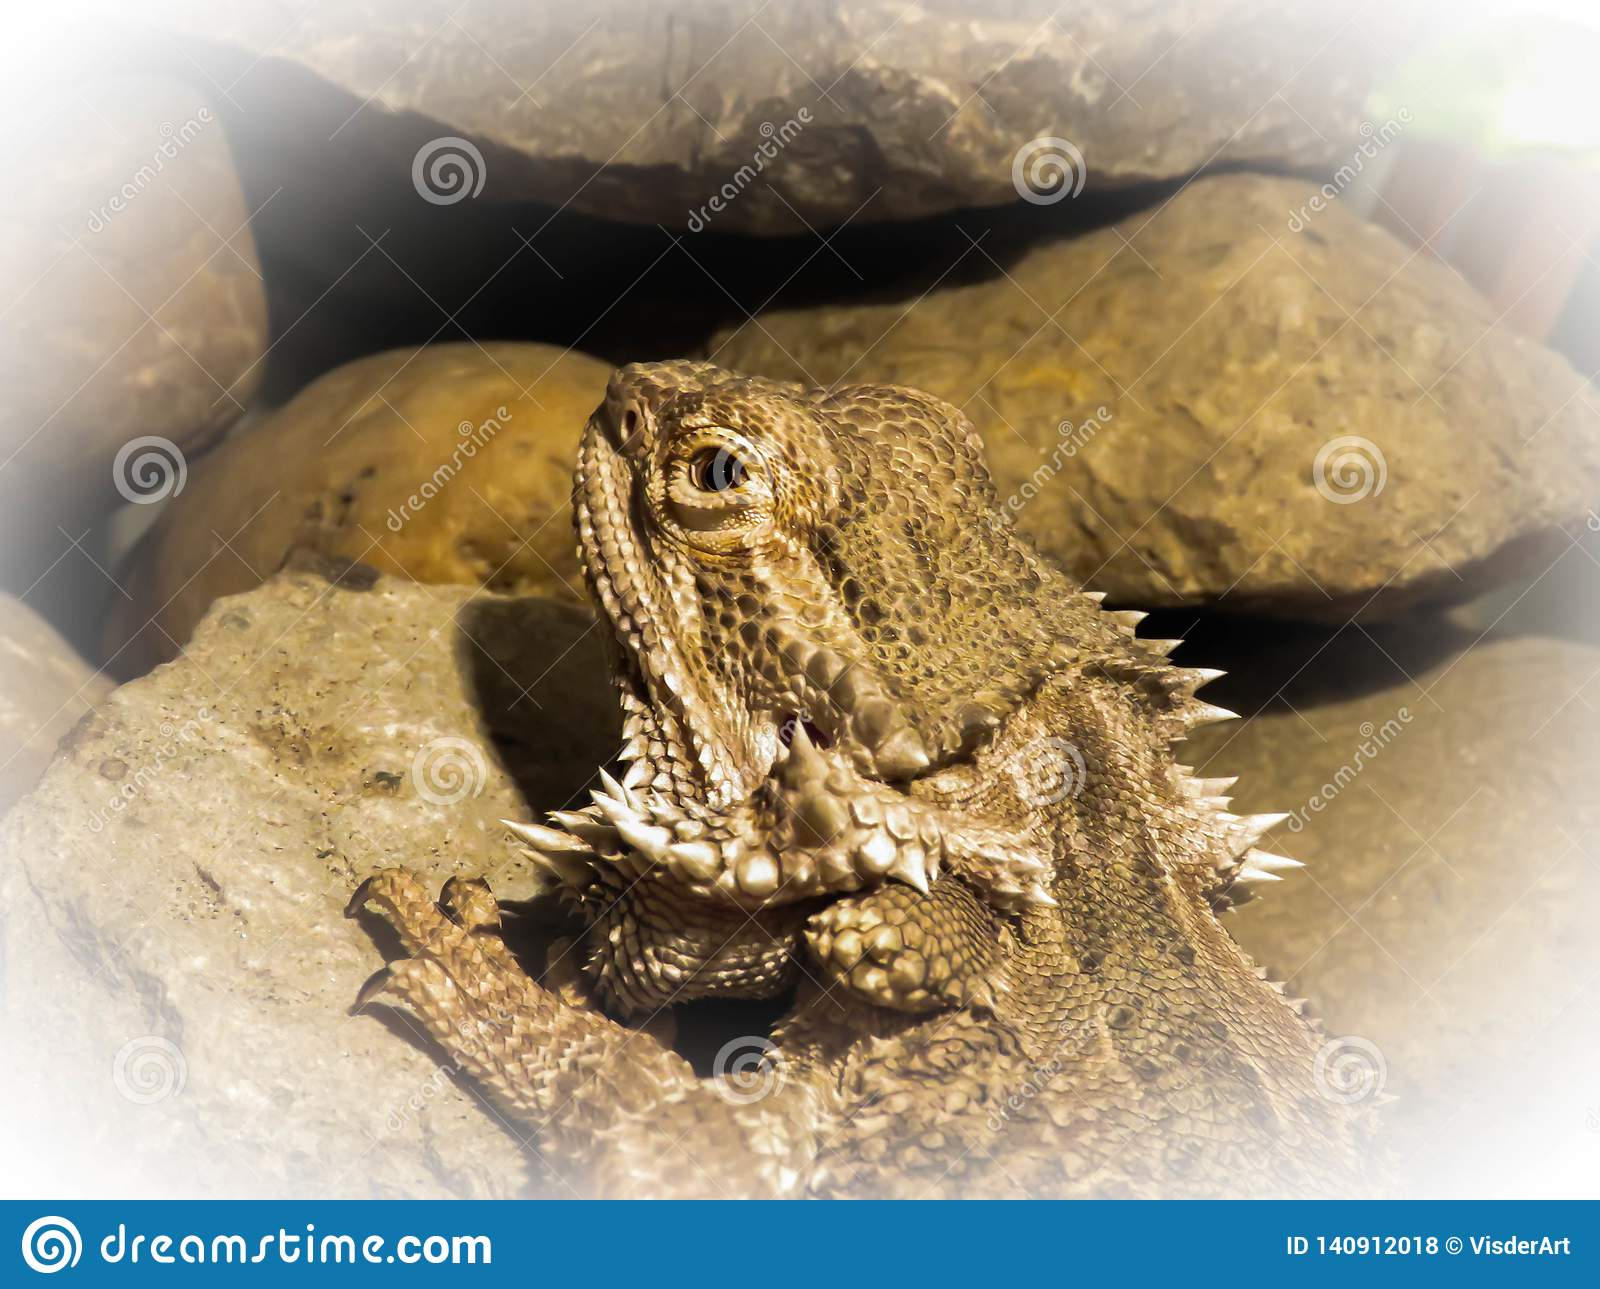 Bearded Dragon camouflage close up